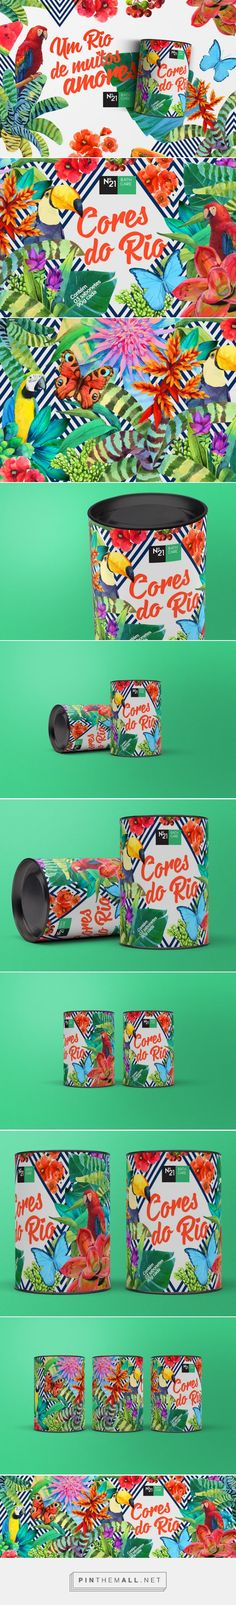 Colors of Rio ‪#‎Soap‬ ‪#‎packaging‬ designed by Up Design - http://www.packagingoftheworld.com/2015/05/colors-of-rio-soap.html